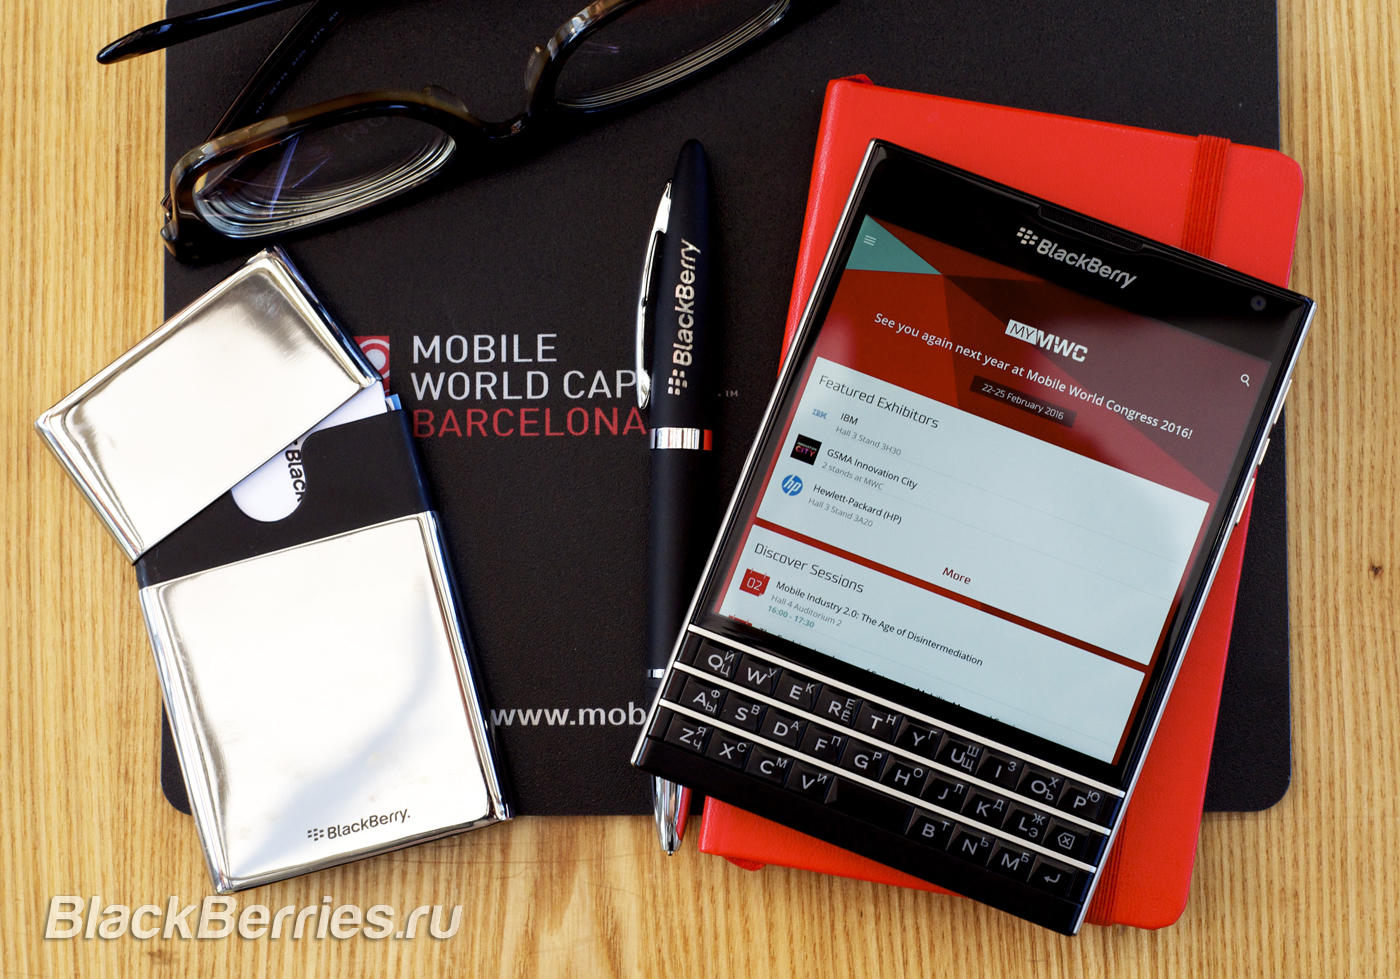 BlackBerry-Passport-MWC-Barselona